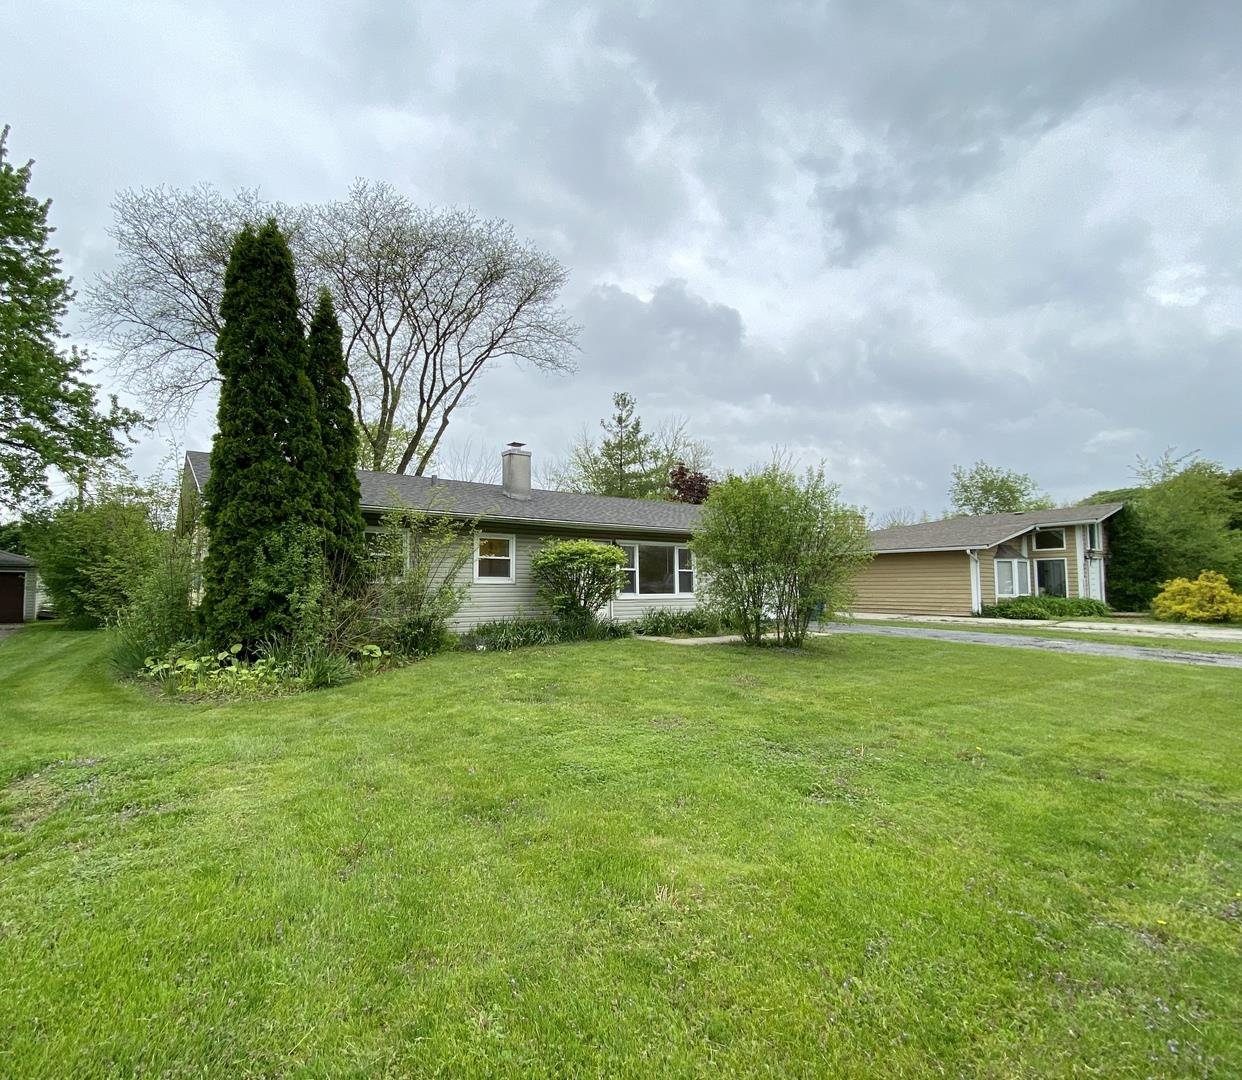 5524 S Quincy Street, Hinsdale, IL 60521 - #: 10733046